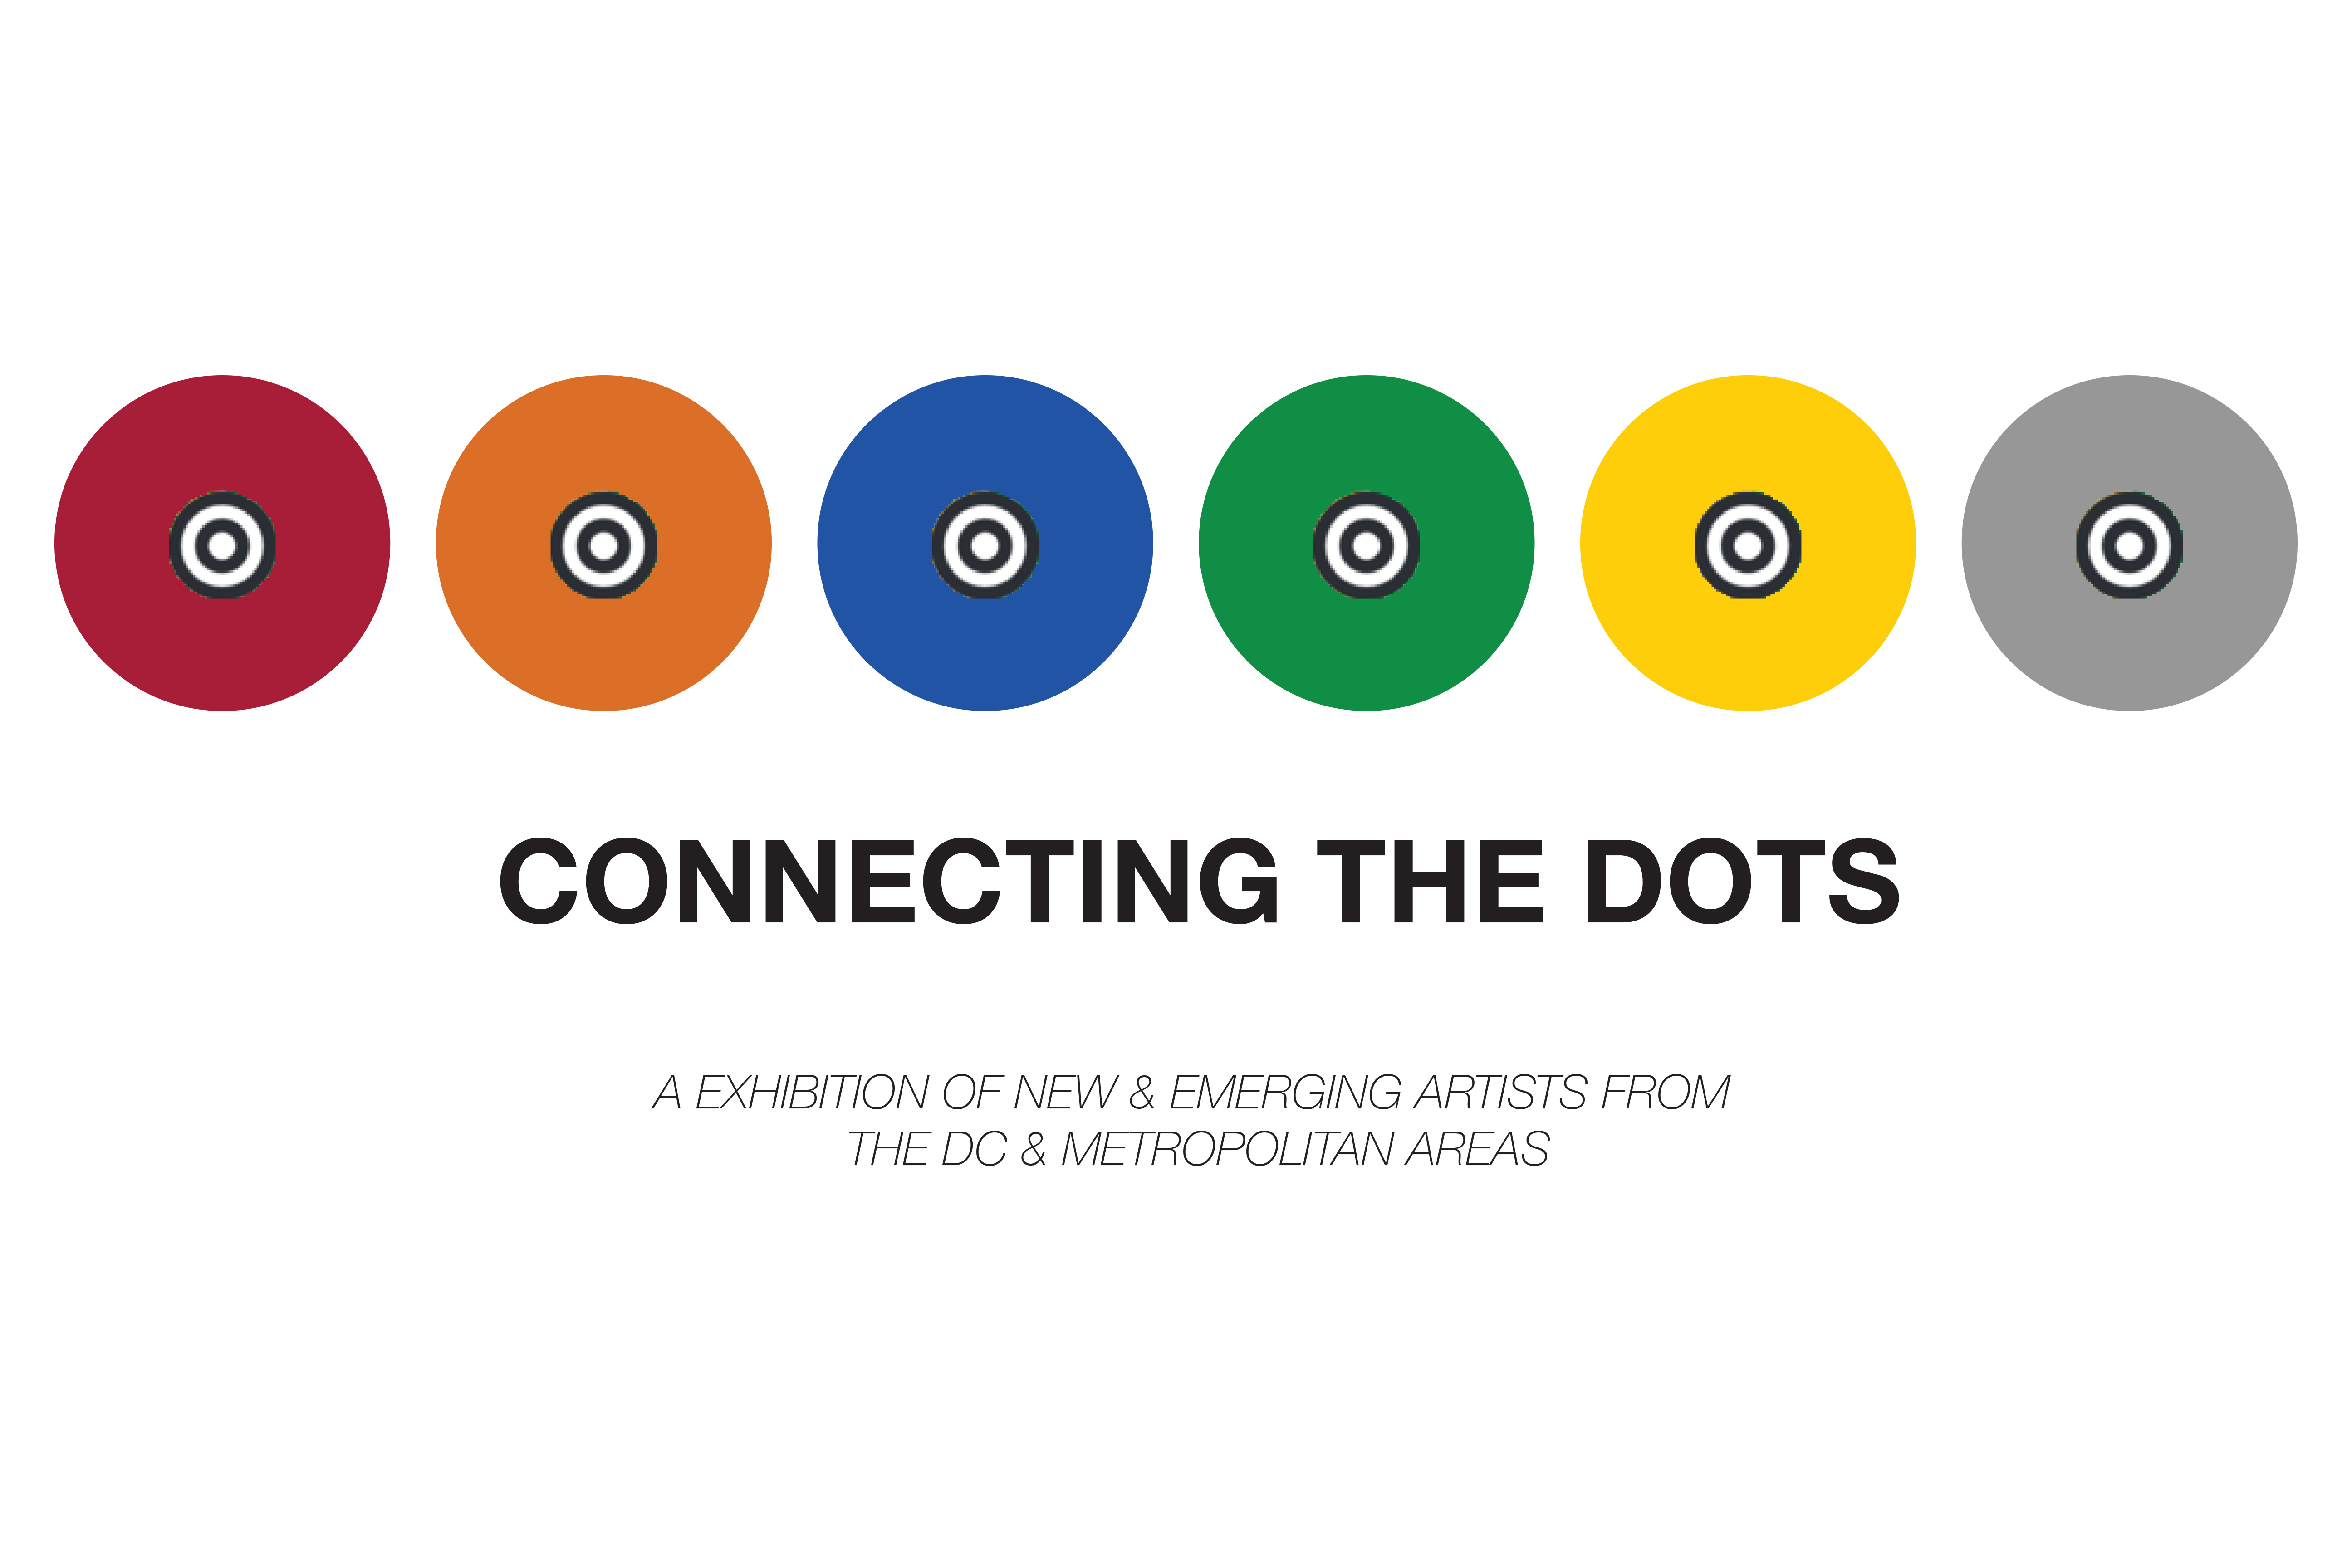 Connecting The Dots: The DMV